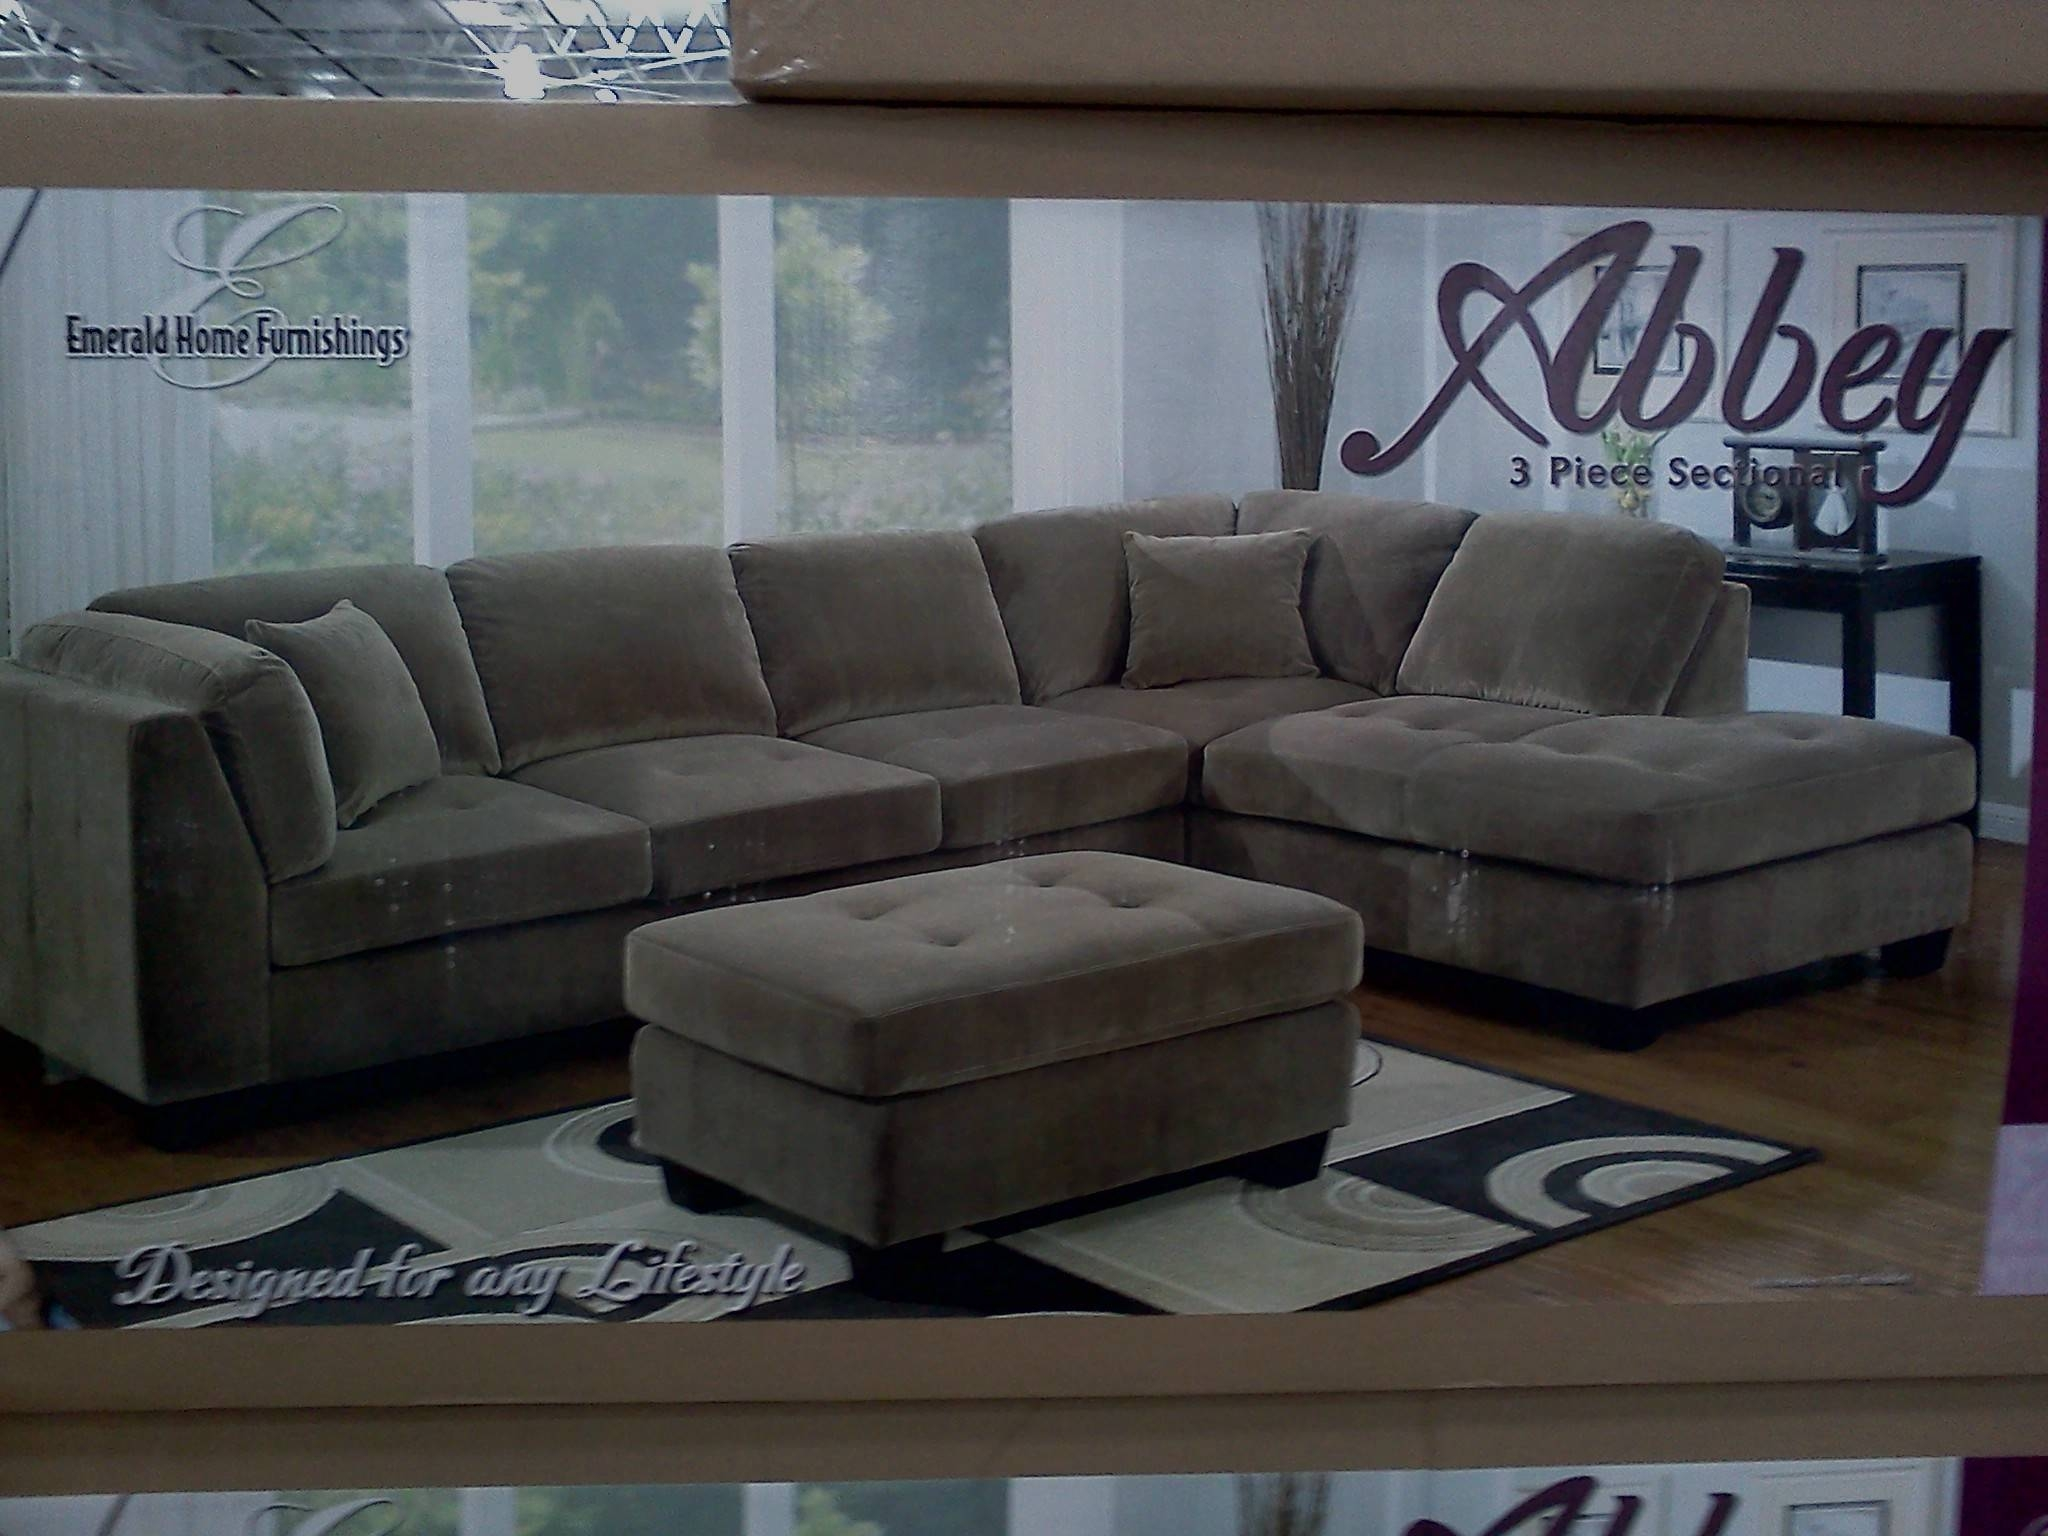 Costco Sectional Sofa | Roselawnlutheran With Costco Sectional Sofas (View 14 of 15)